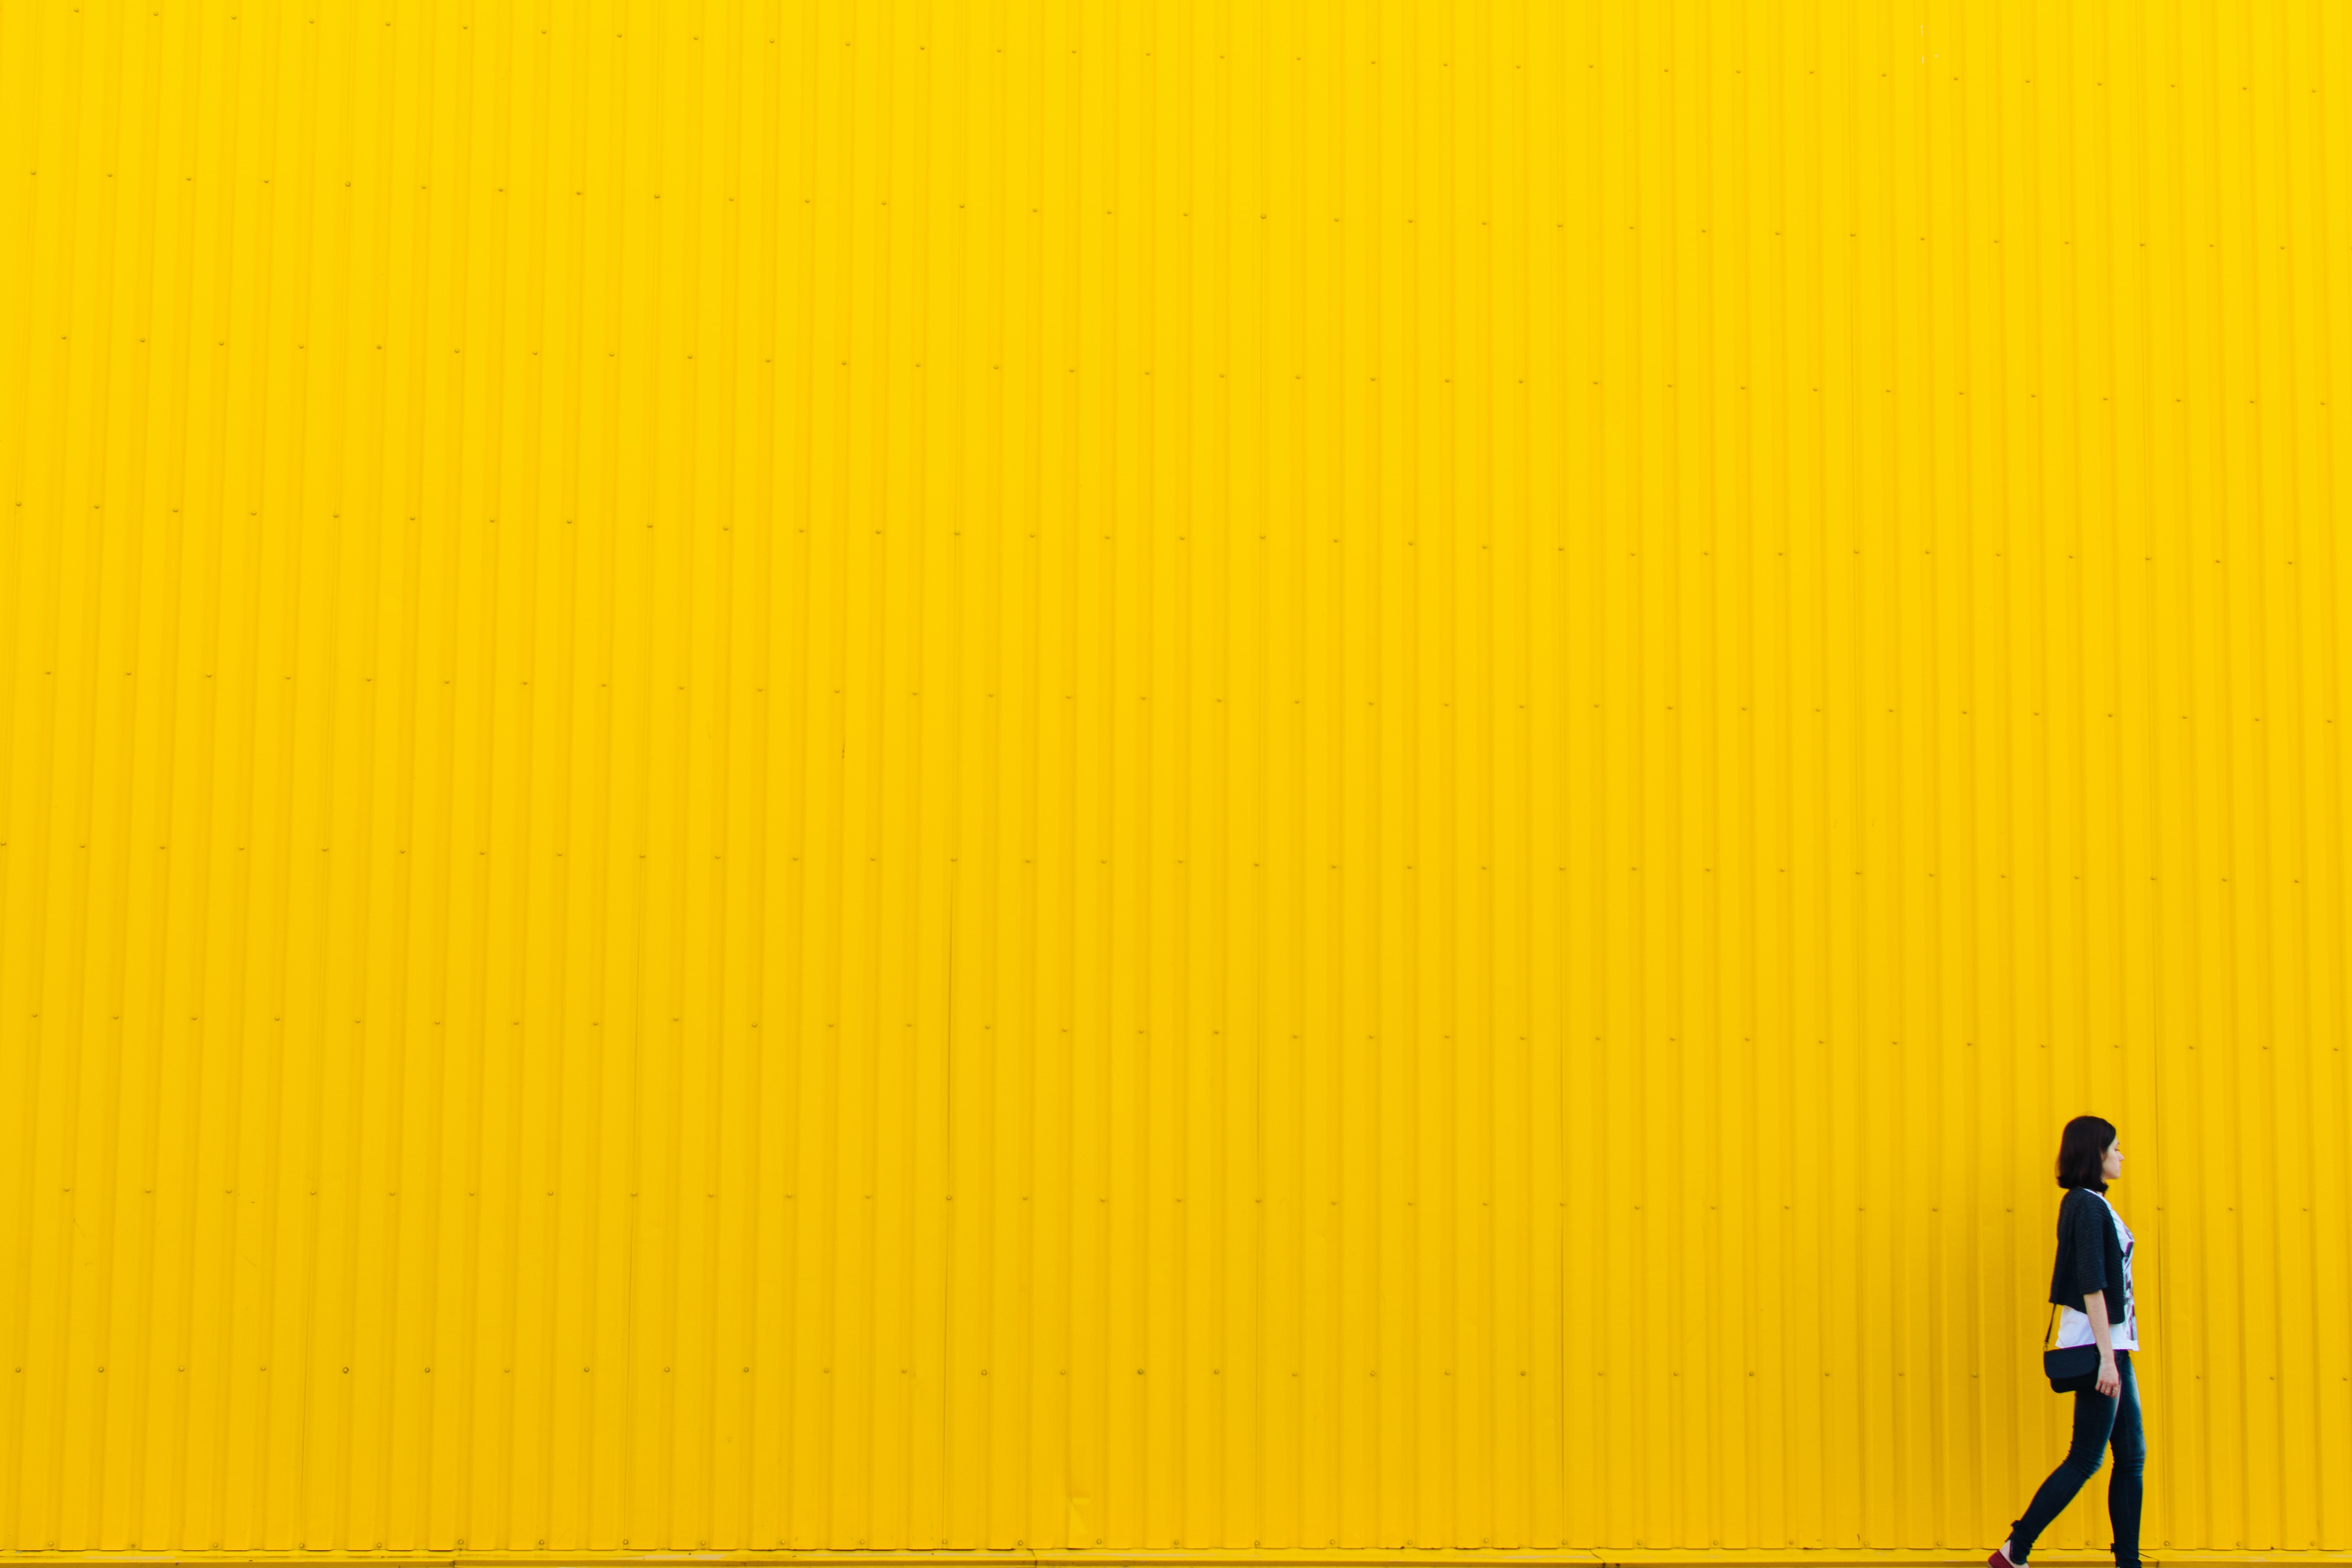 woman wearing black top standing near yellow wall